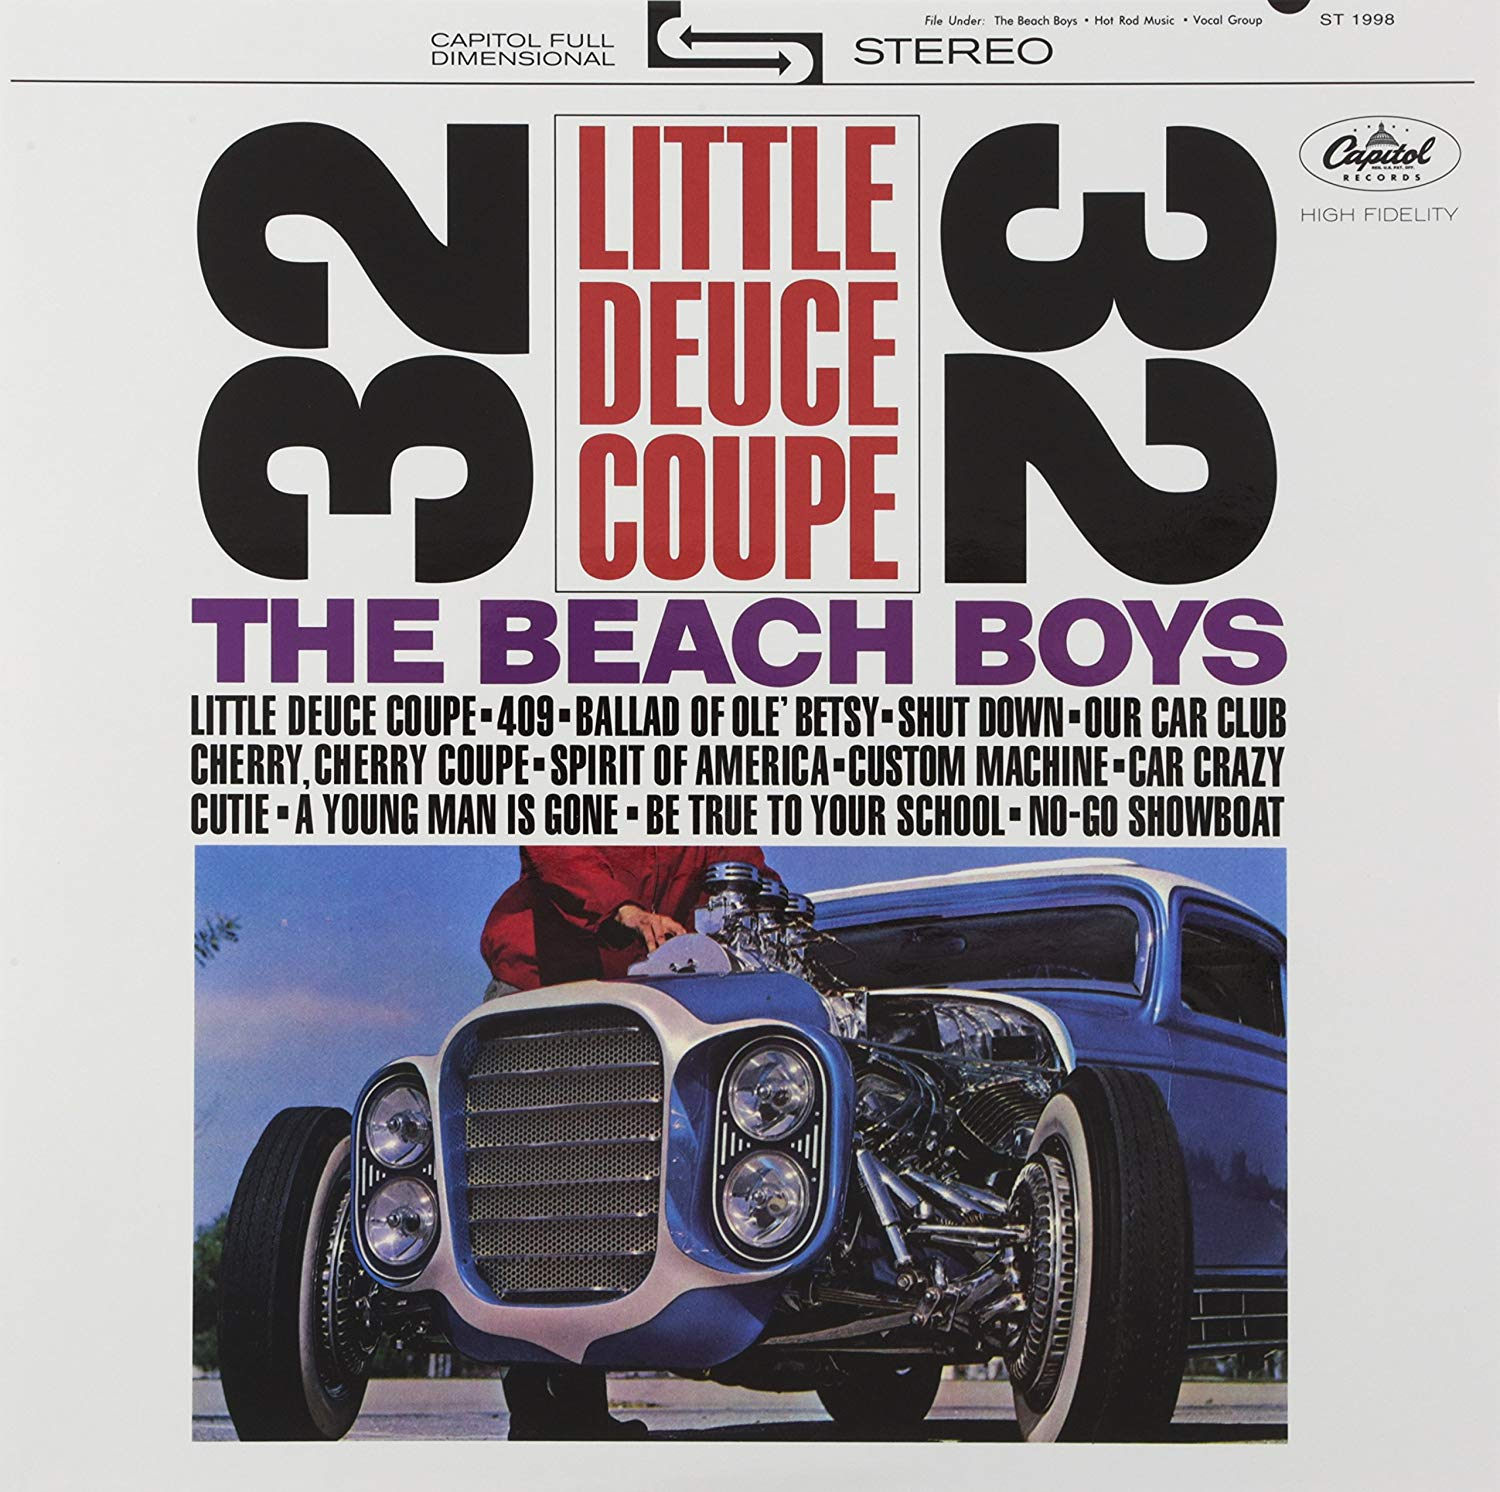 The Beach Boy Little Deuce Coupe